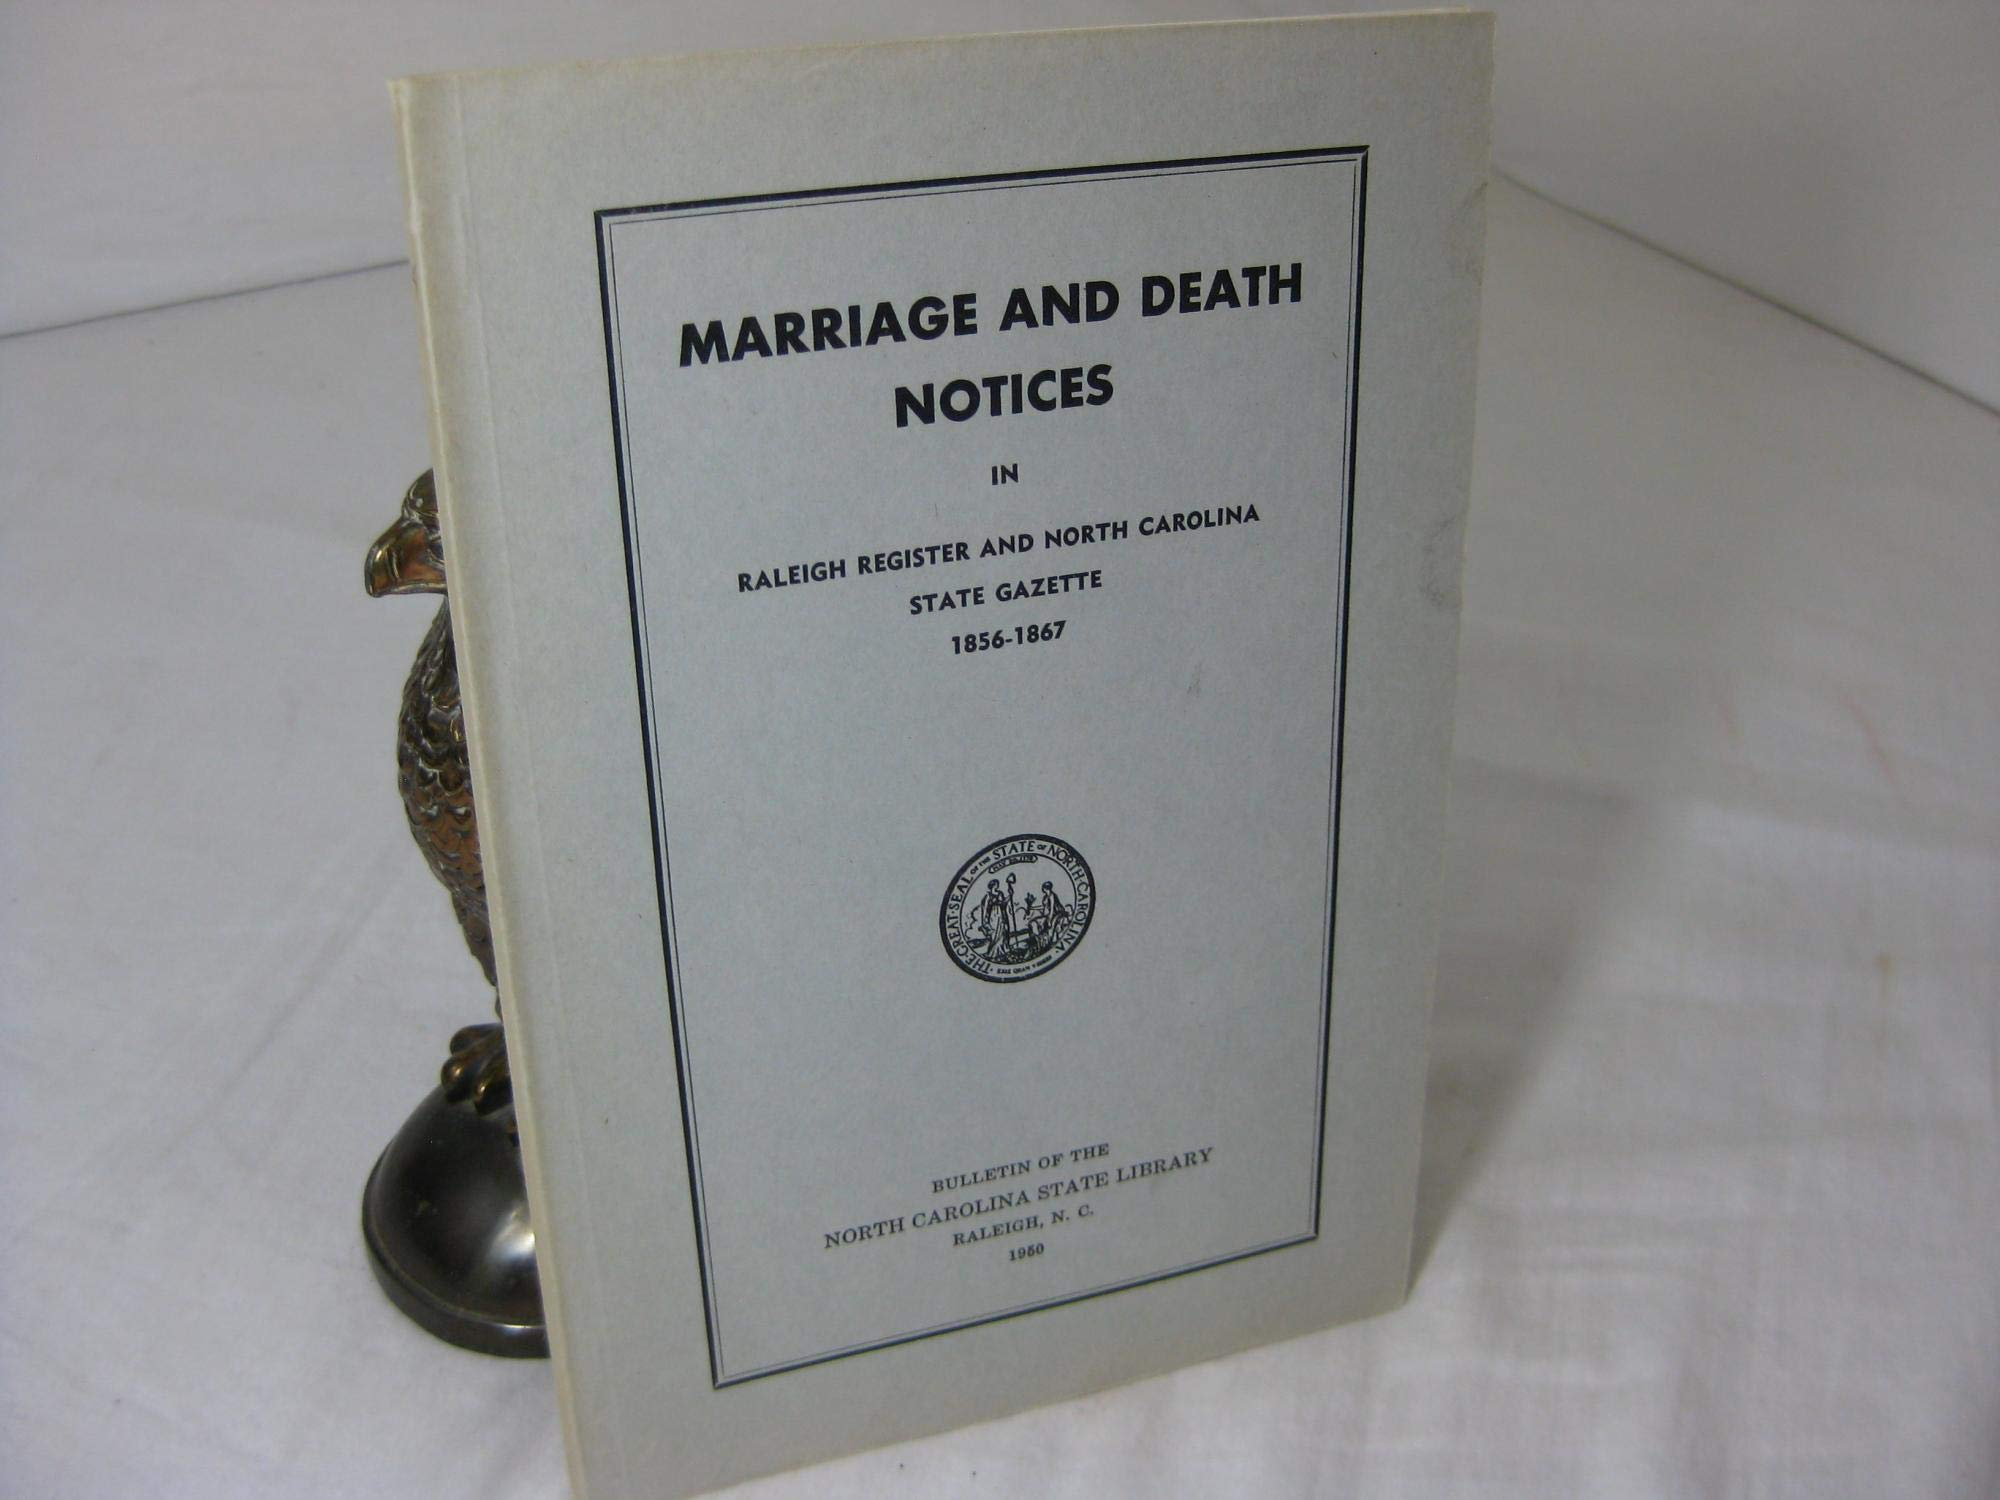 Marriage and Death Notices in Raleigh Register and North